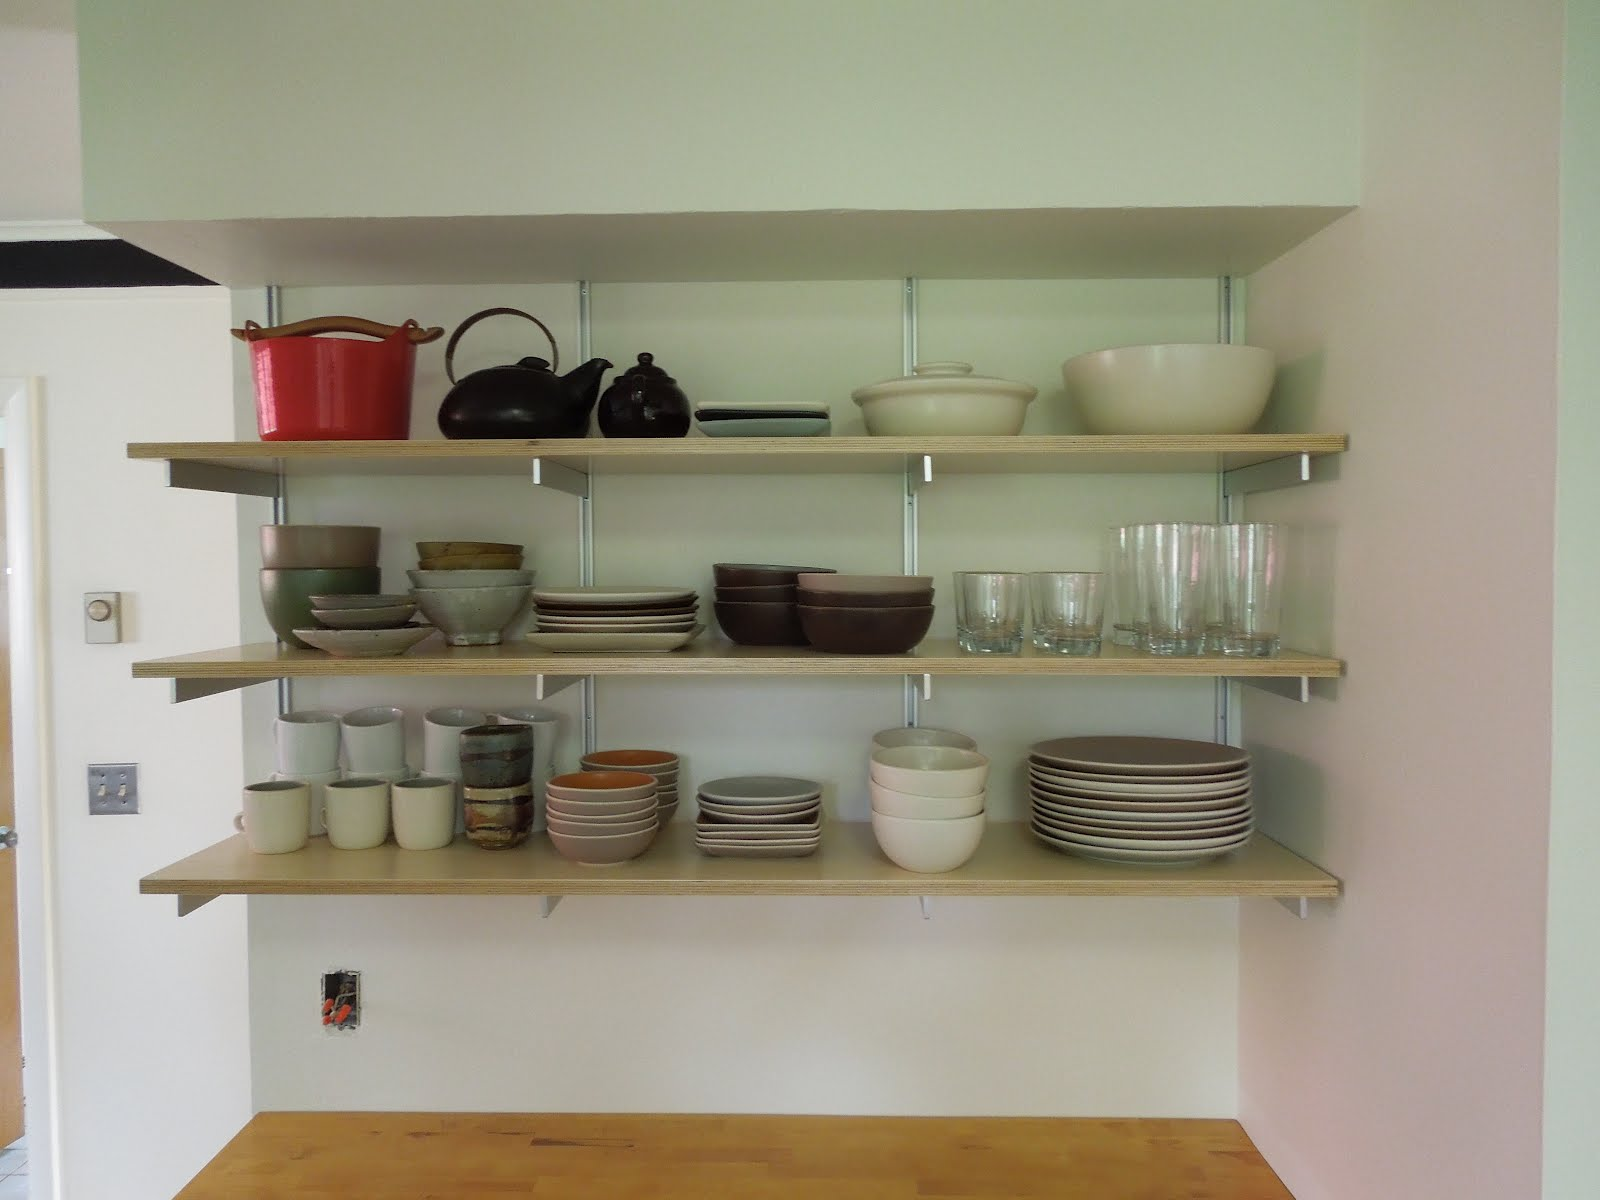 Toys and techniques kitchen shelves Kitchen setting pictures